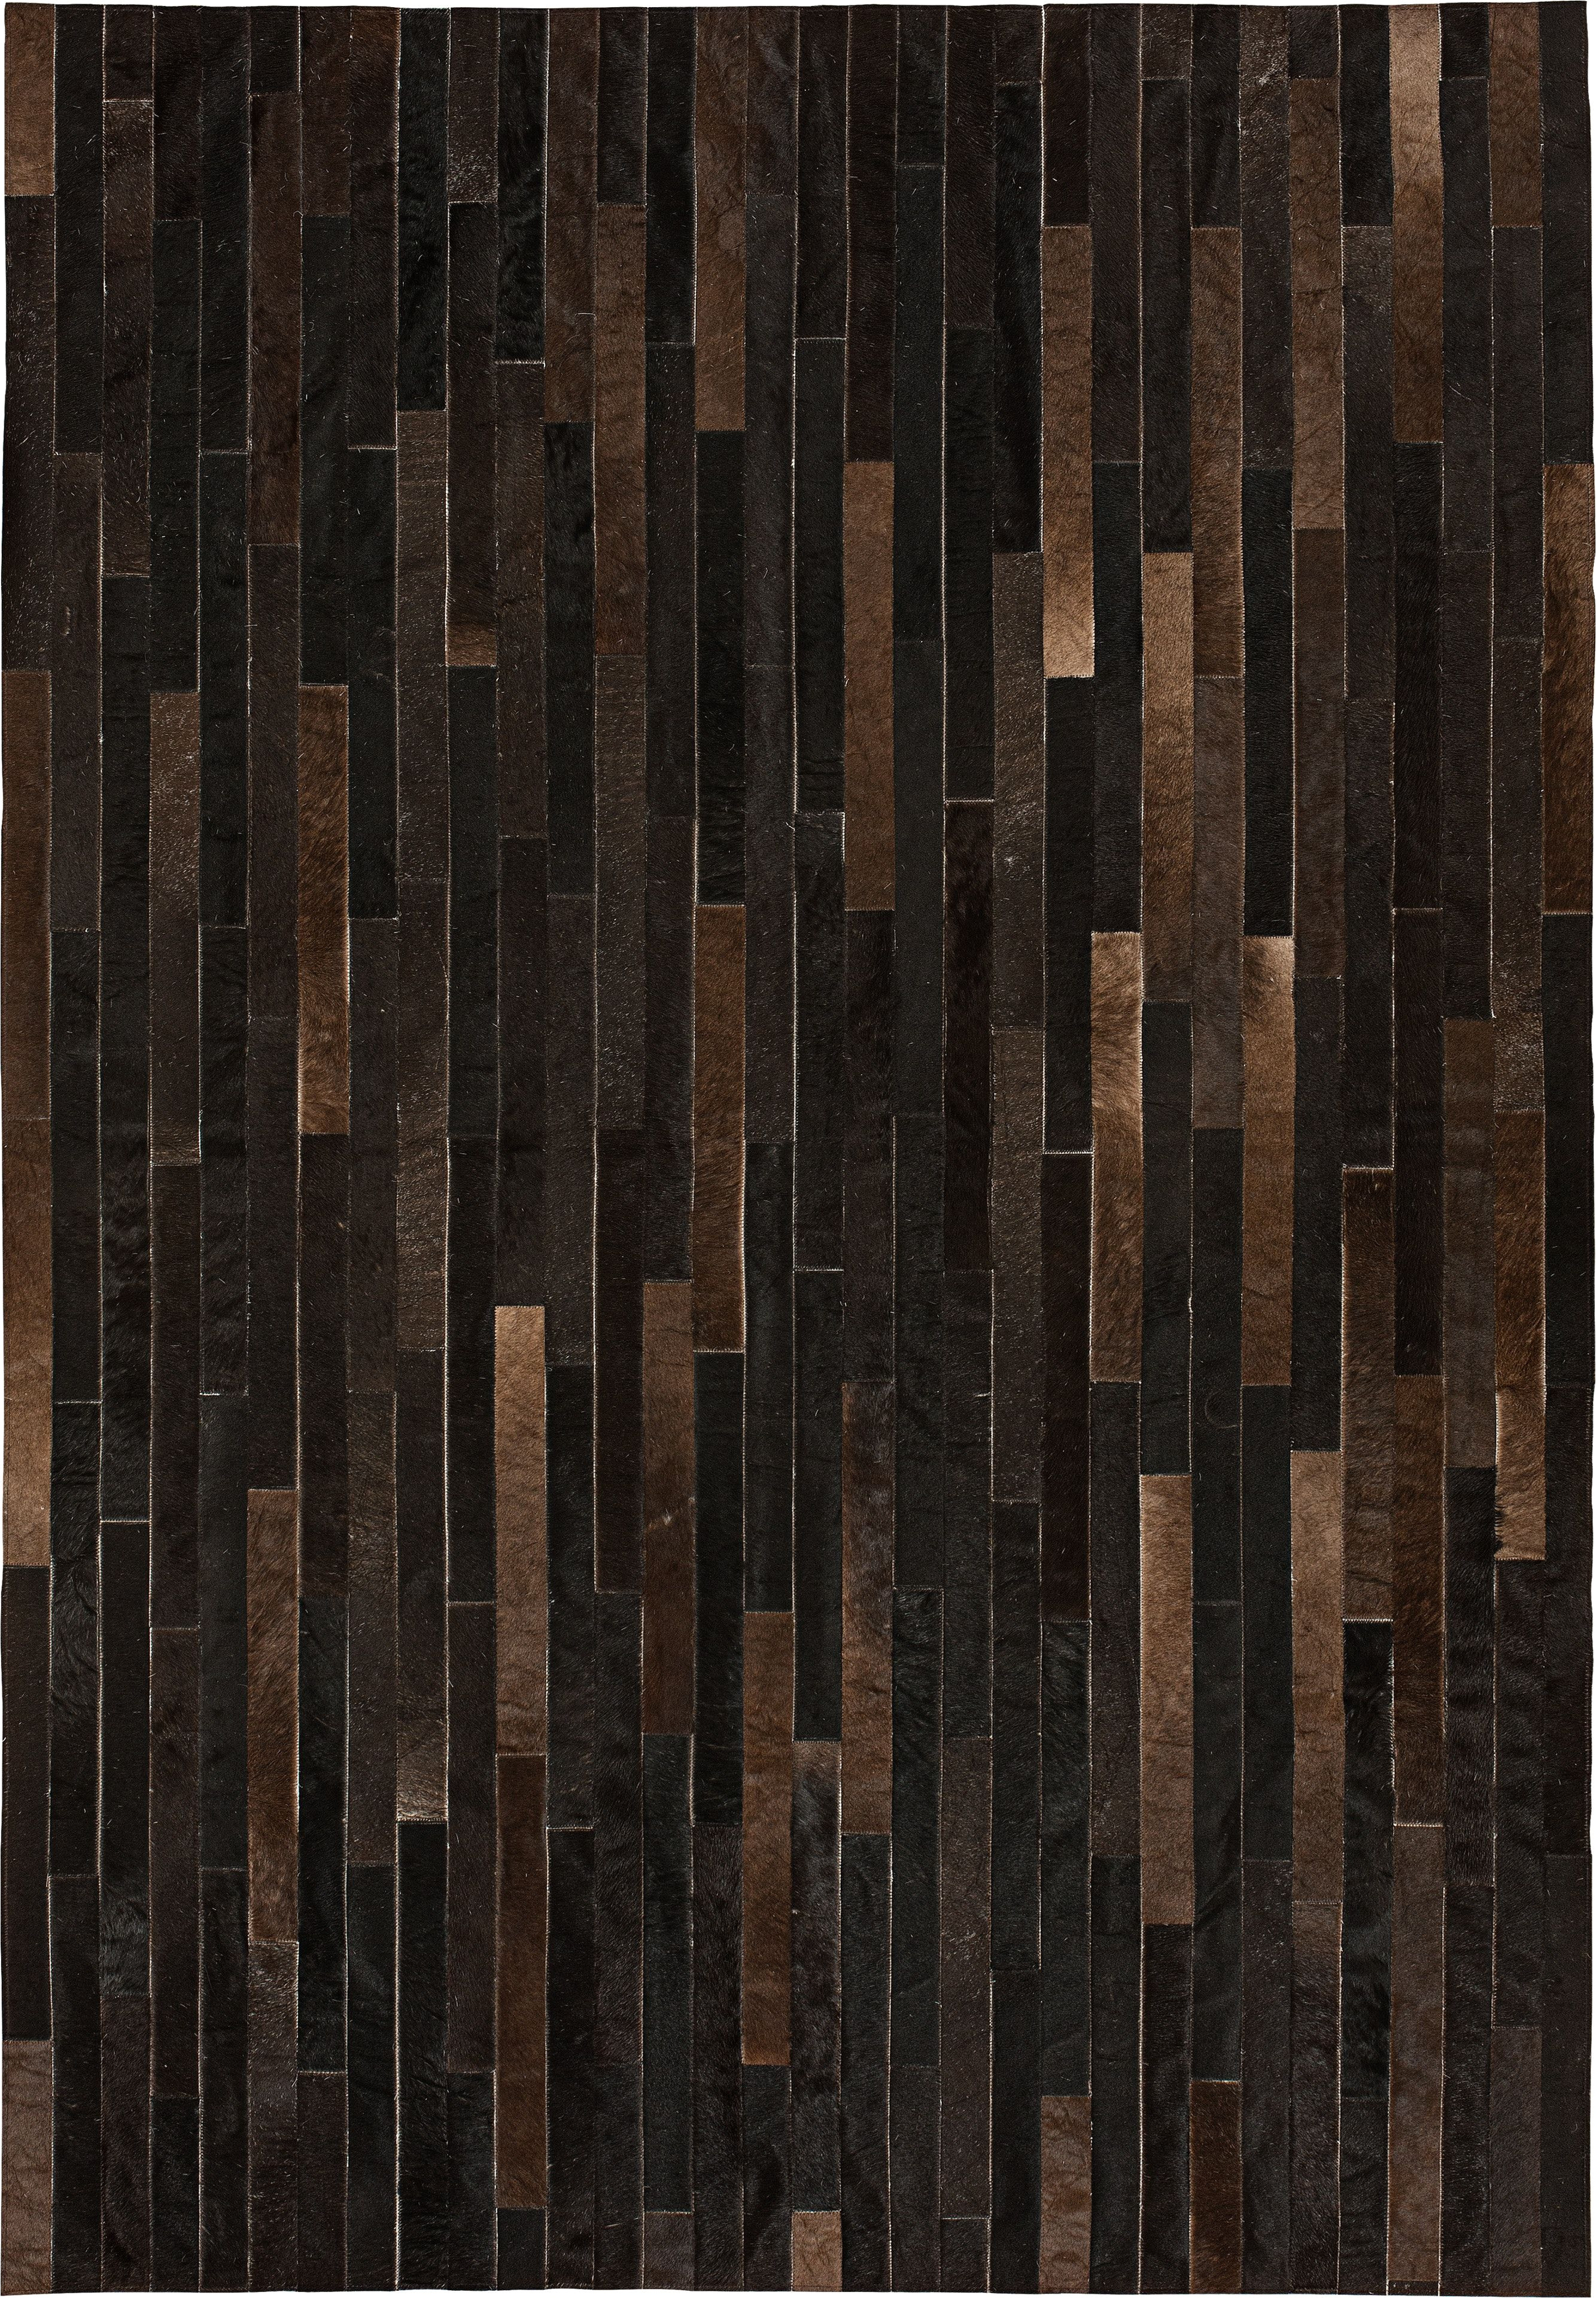 buy caminito patchwork cowhide rug umber by pampas leather made to order designer rugs from dering hall s collection of contemporary geometric stripe